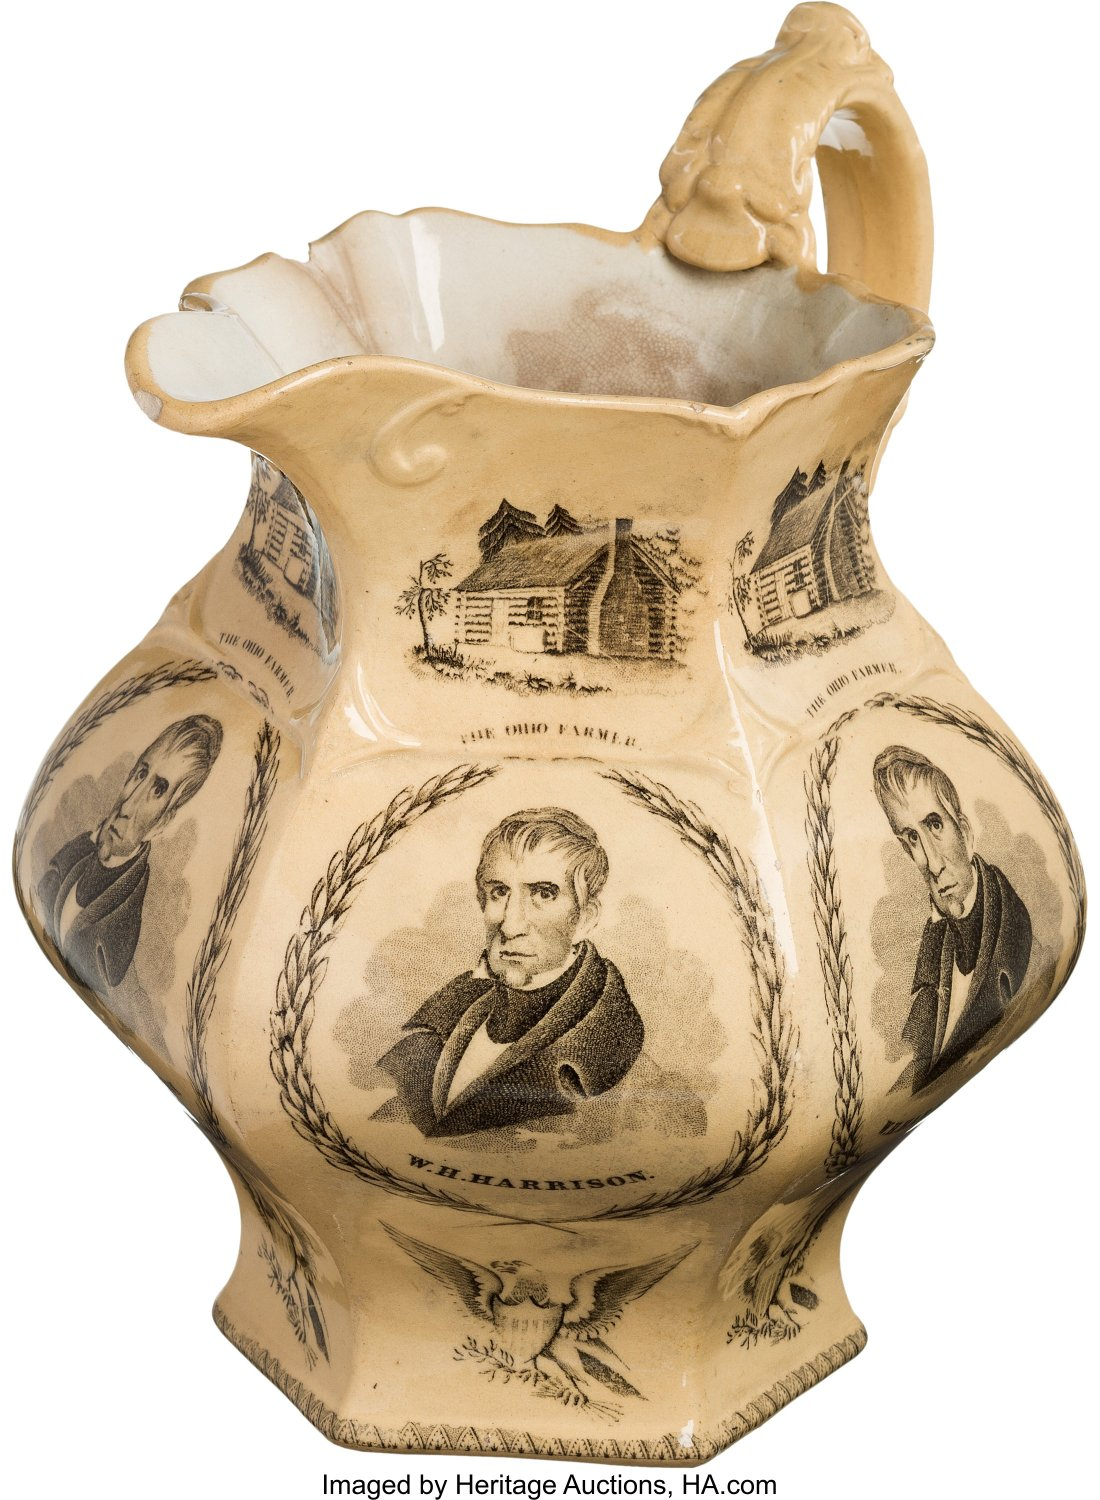 William_Henry_Harrison_1840_Campaign_Pitcher_Heritage_Auctions_1